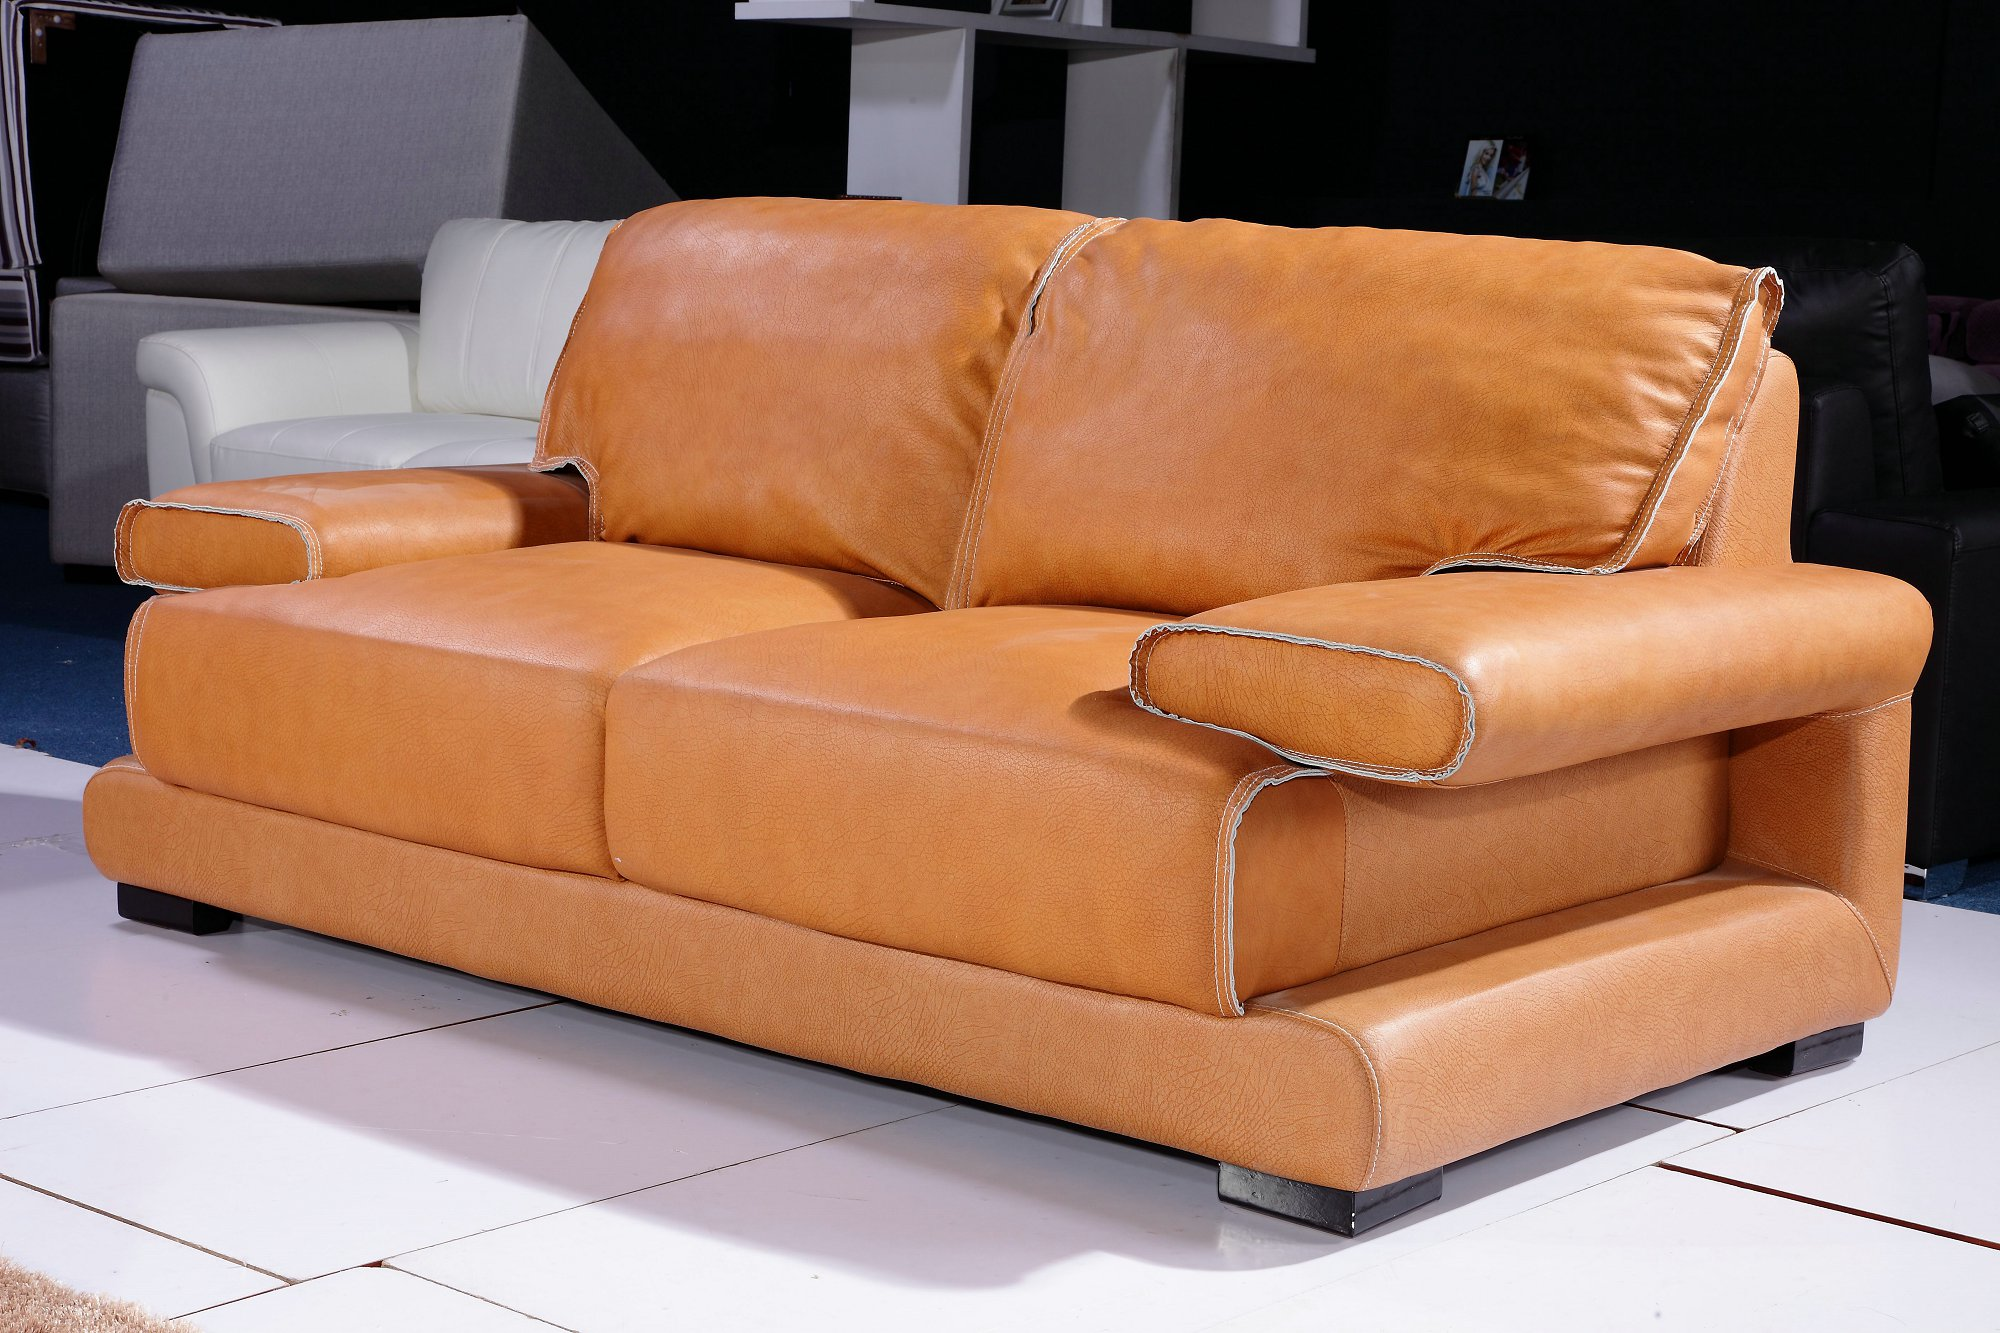 Orange Leather Couch Furniture - HomesFeed